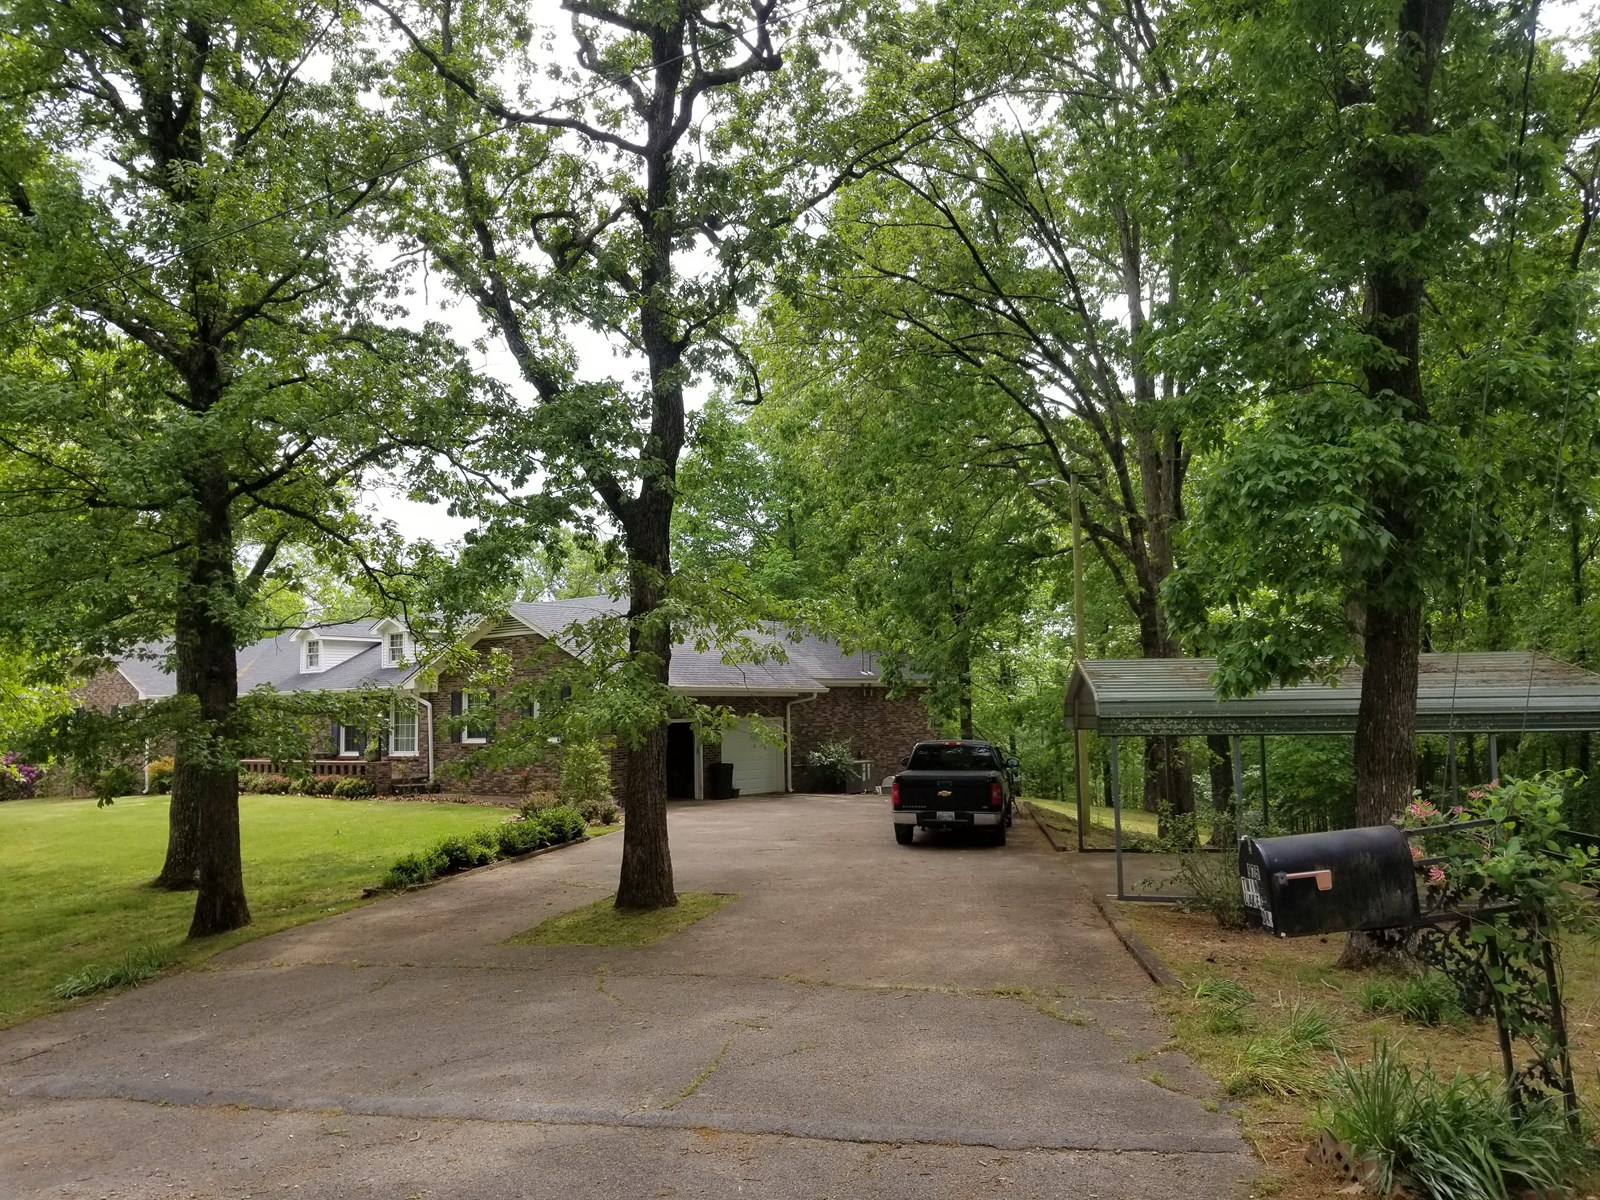 Tennessee 5 Bedroom Home For Sale on 9 Acres